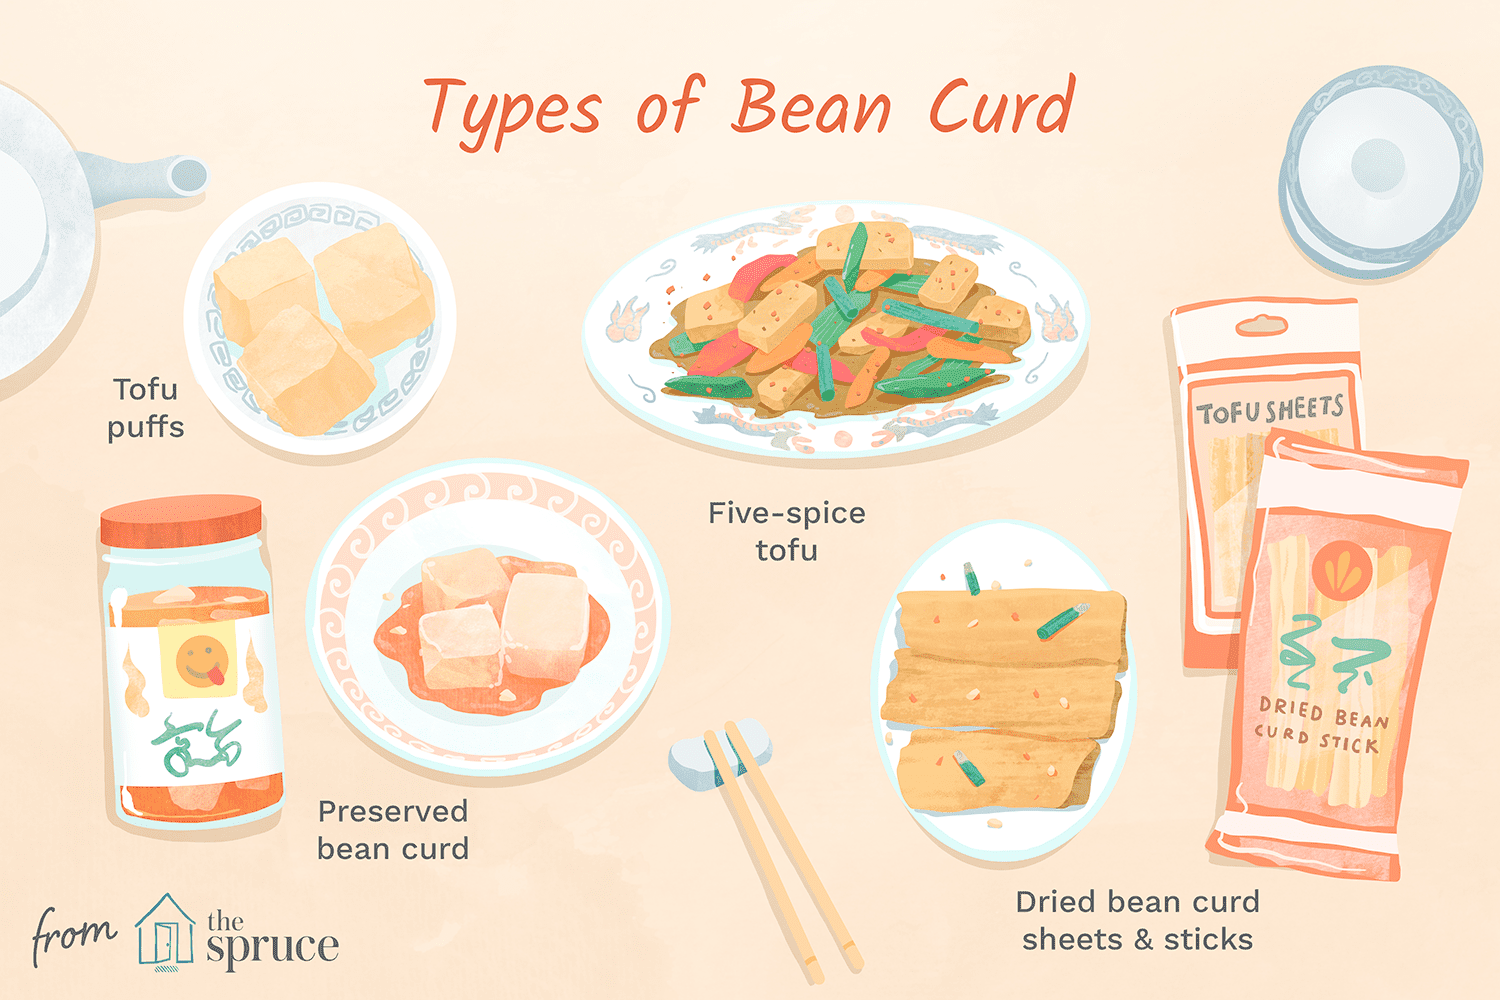 Types of bean curds